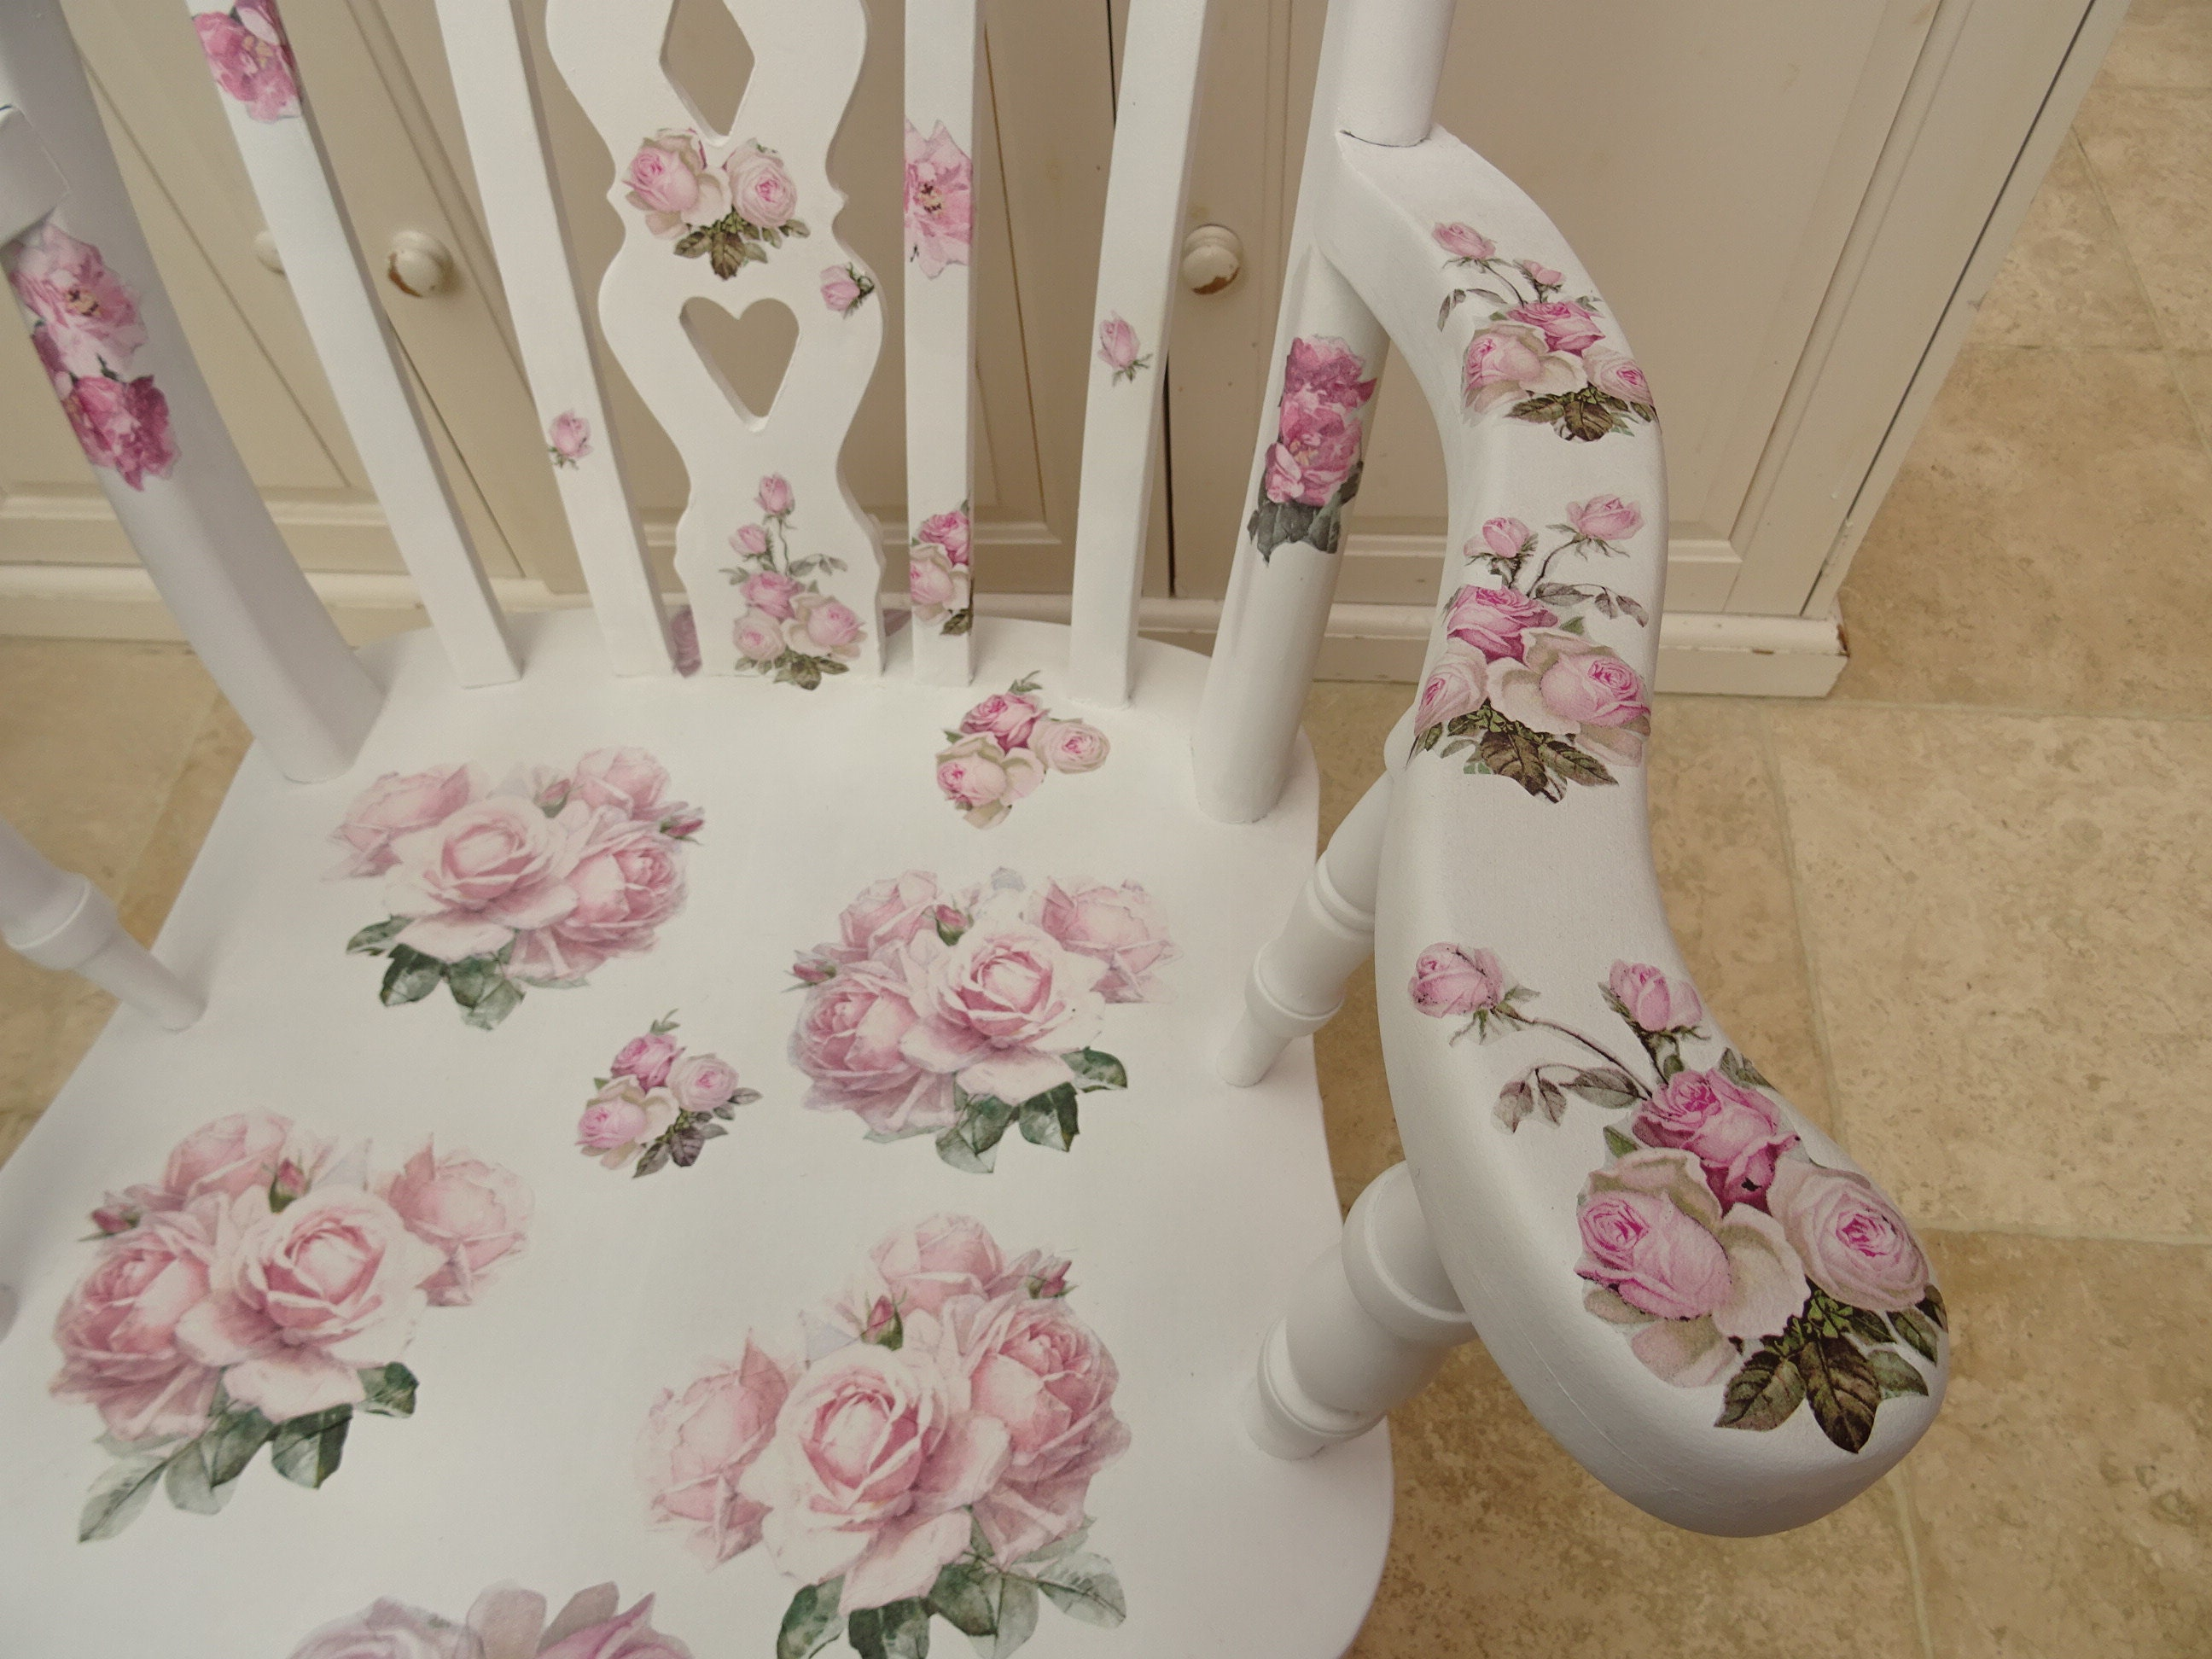 Stupendous Rocking Chair Rose Design Decopatch Decoupage With A Gmtry Best Dining Table And Chair Ideas Images Gmtryco